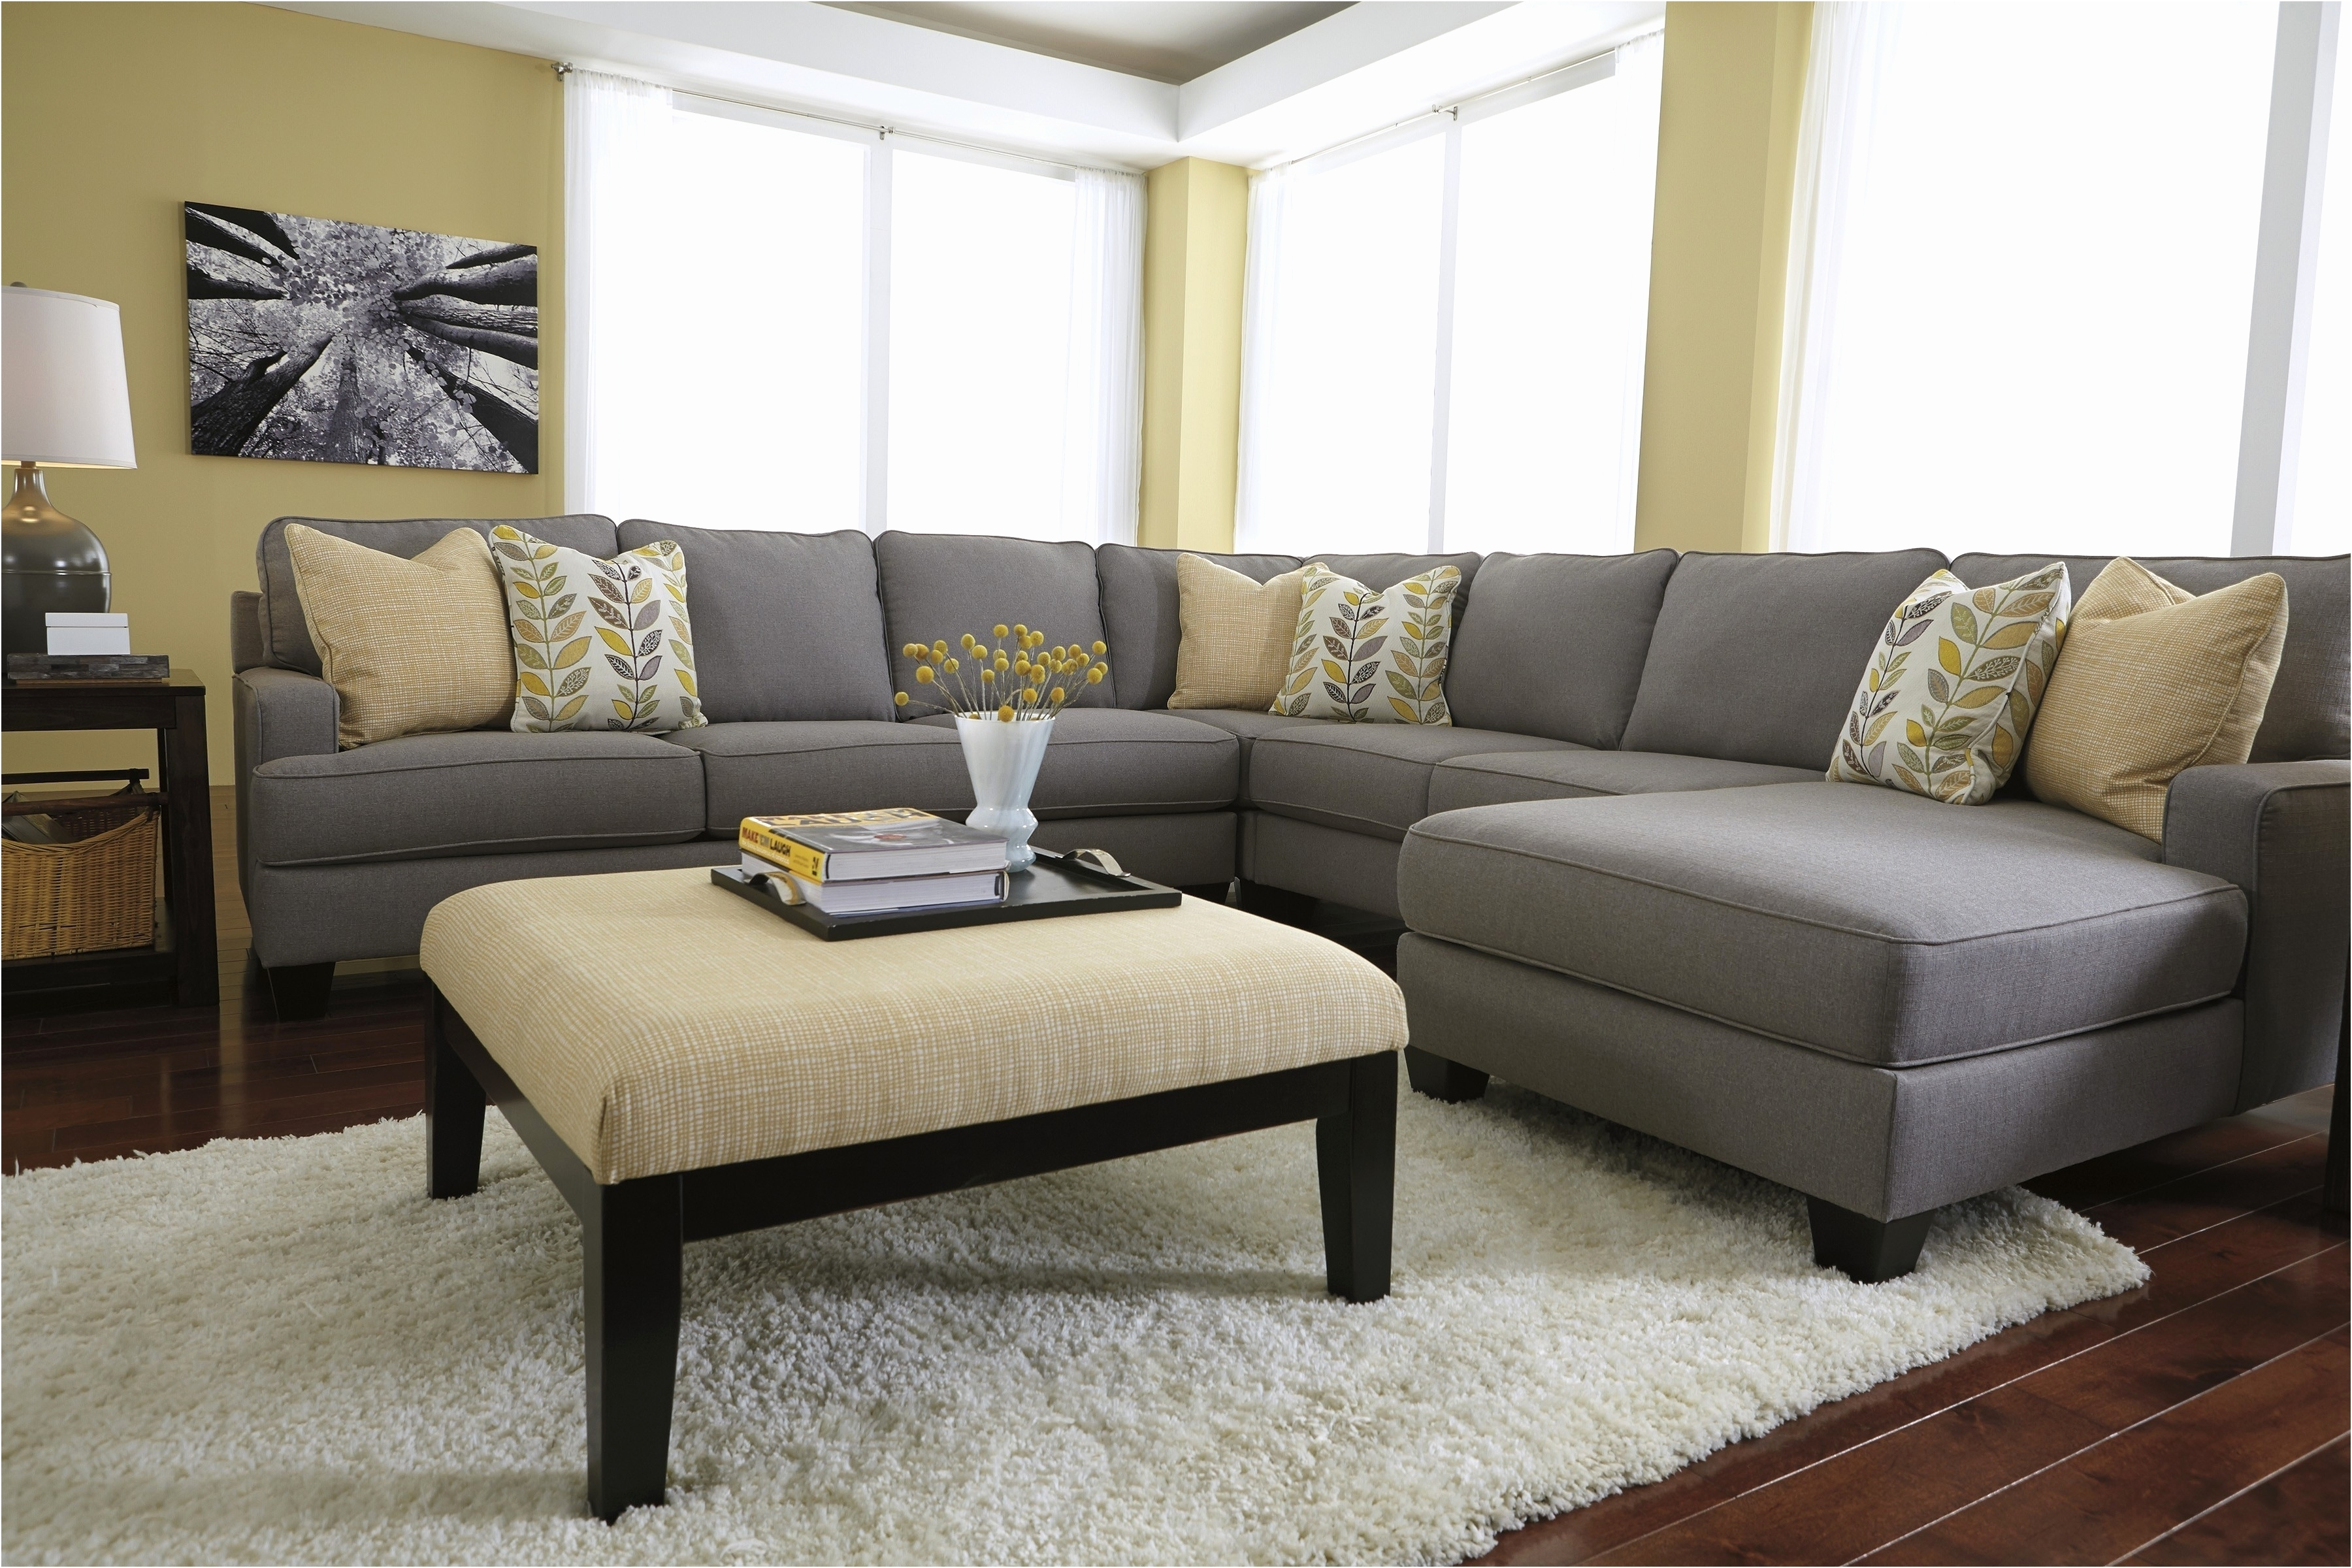 Favorite Huge Sofas Regarding Oversized Sectional Sofas For Sale Sofa Set Huge Couches Toronto (View 3 of 15)